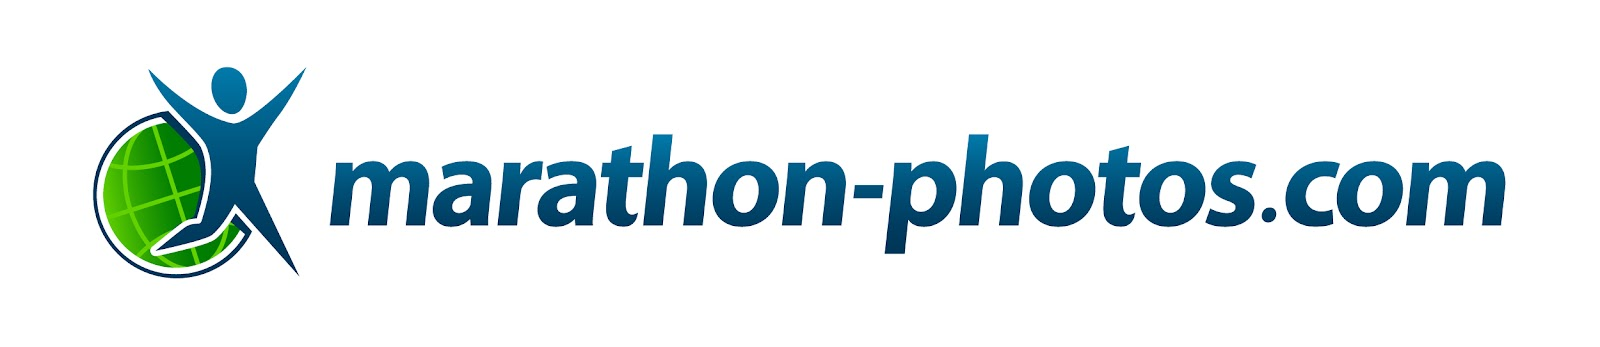 Marathon Photos LOGO.jpg